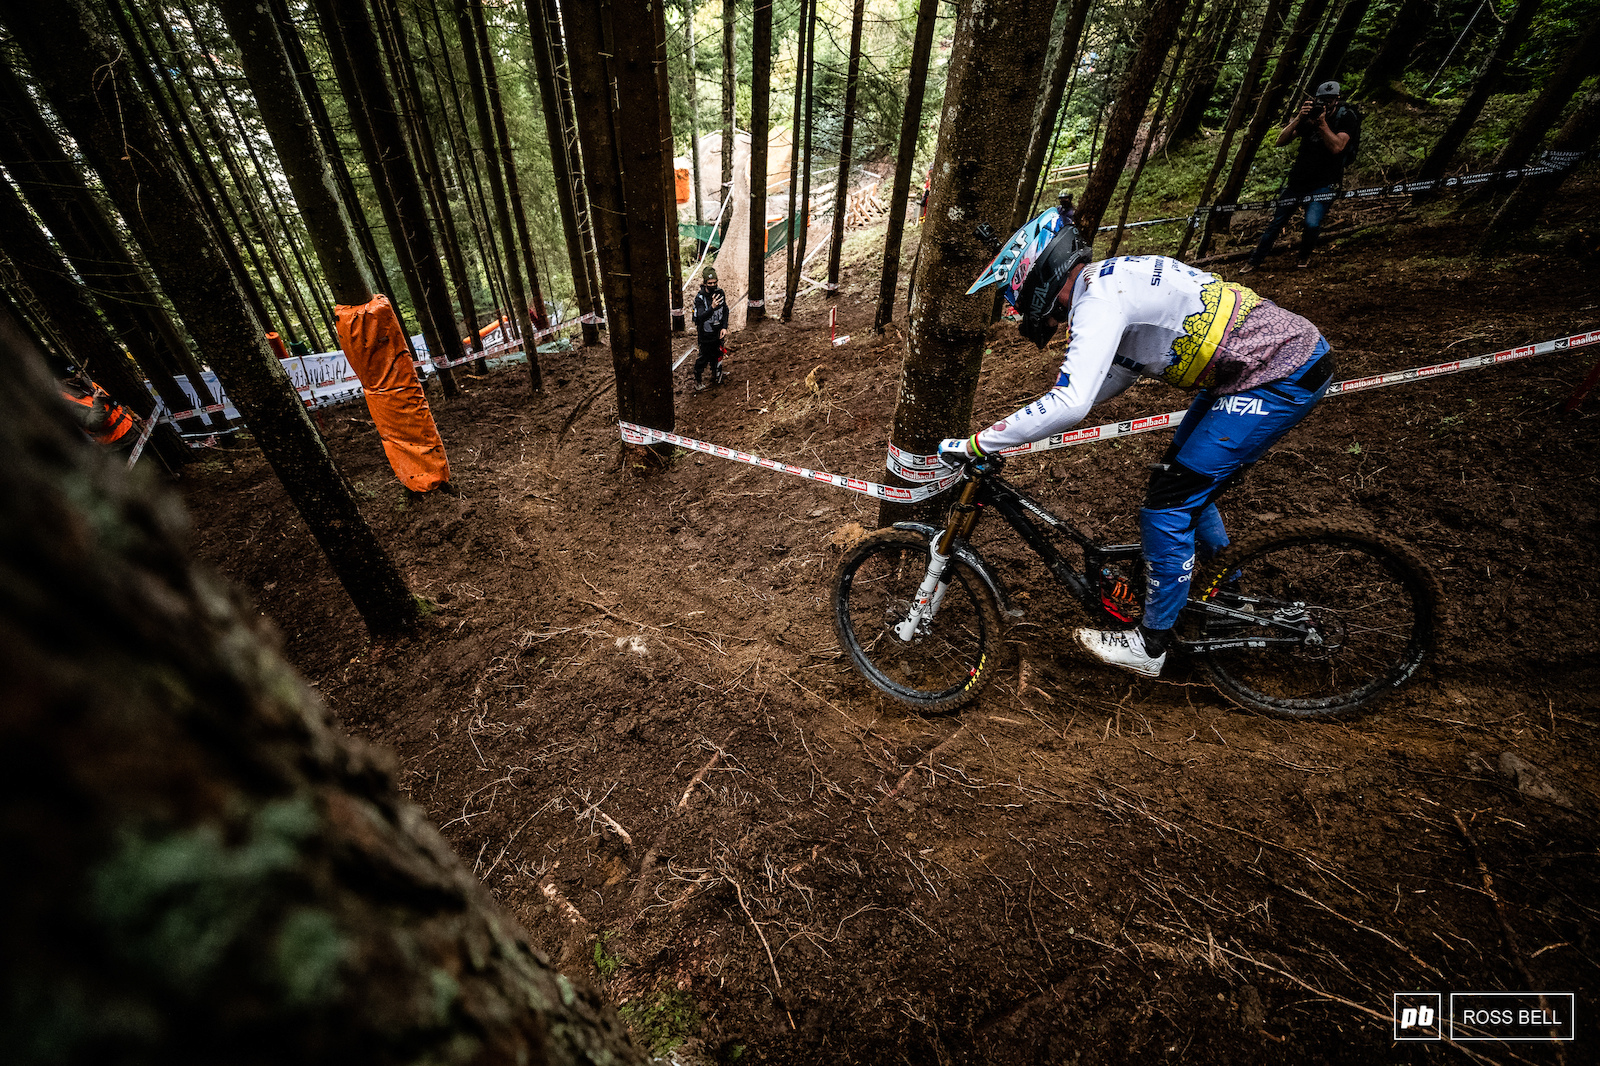 Greg Minnaar getting to grips with the steeps. He won last time we had World Champs in Leogang can he make it 2 from 2